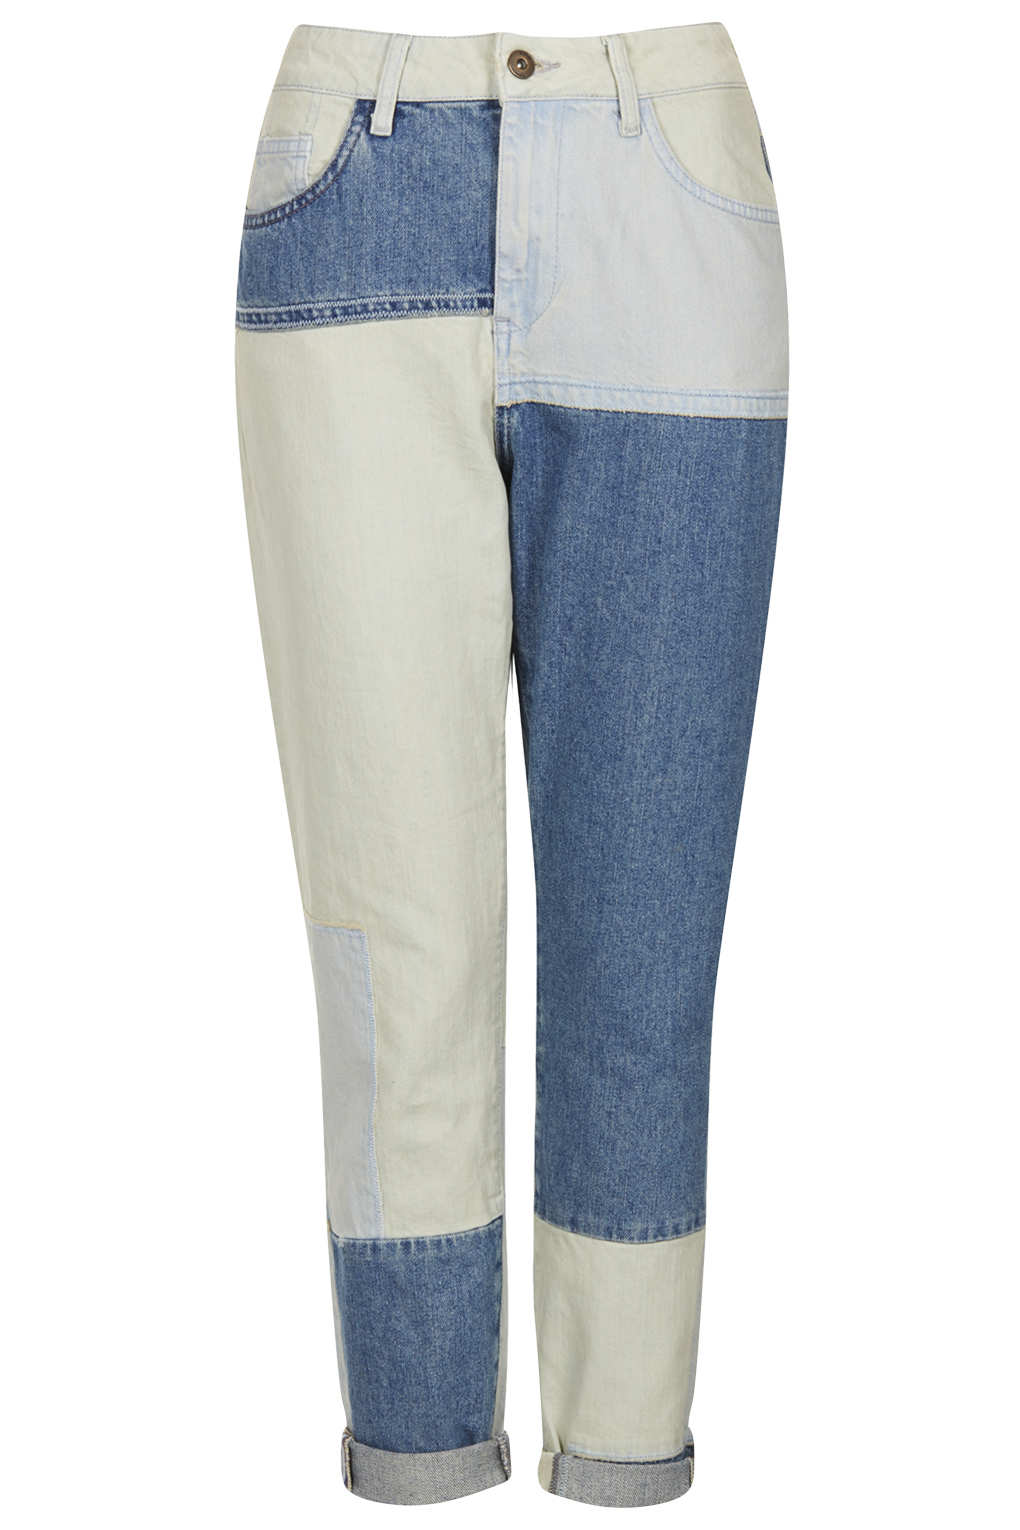 Mens Moto Skinny Jeans with Rips. Keeping this secret is one of the ways we keep bringing you top designers and brands at great prices. $ Comparable value $ Save up to 51%. QUICK VIEW. ALEXANDER JULIAN D JEANS Petite High Waisted Skinny Jeans with Rolled Cuffs.